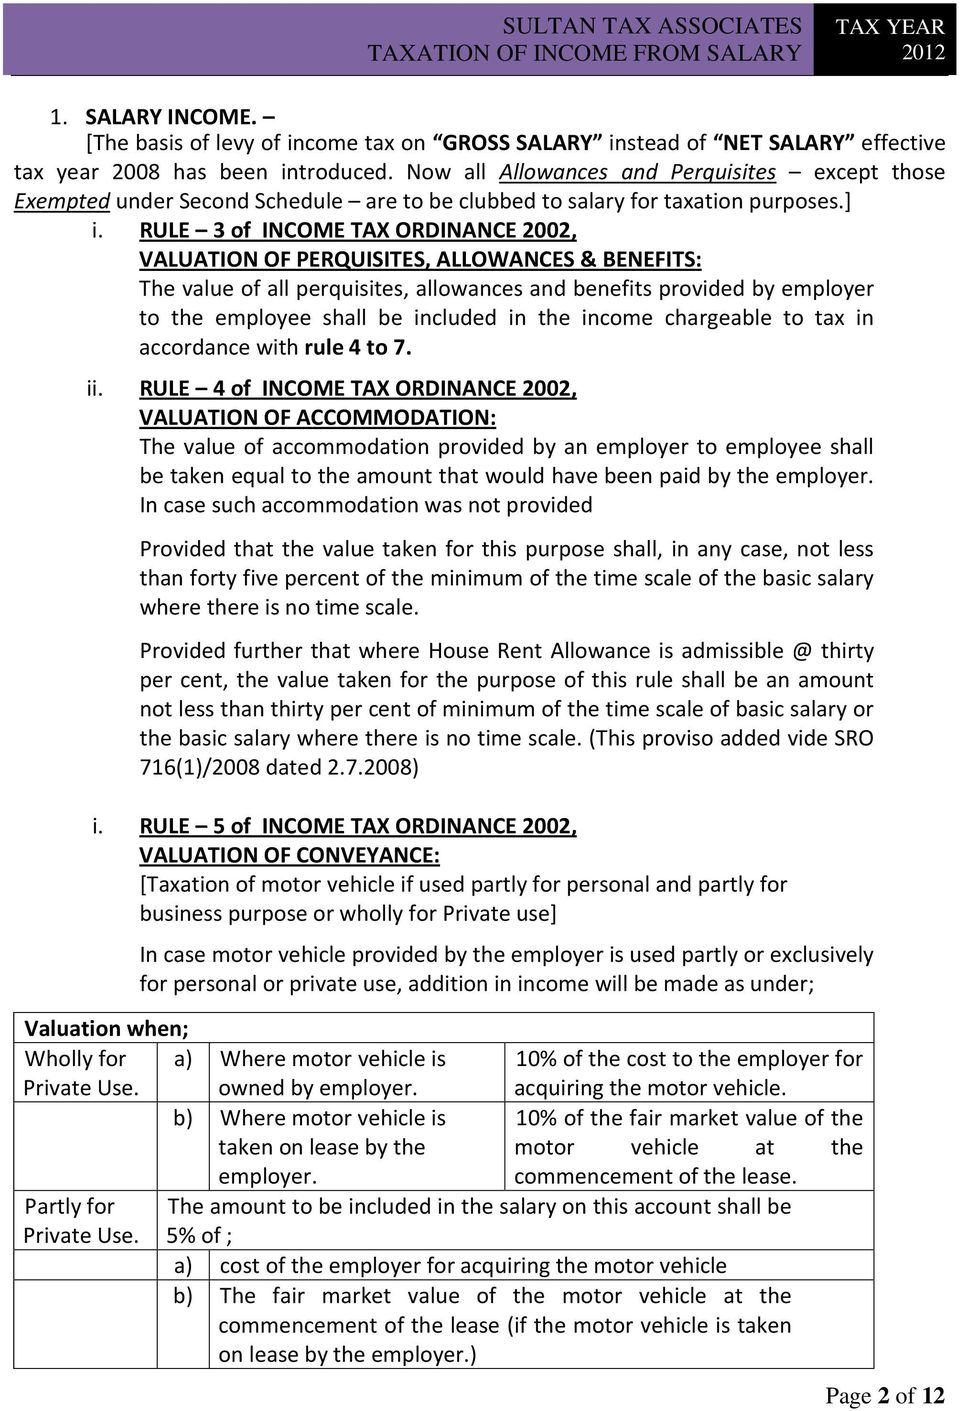 RULE 3 of INCOME TAX ORDINANCE 2002, VALUATION OF PERQUISITES, ALLOWANCES & BENEFITS: The value of all perquisites, allowances and benefits provided by employer to the employee shall be included in